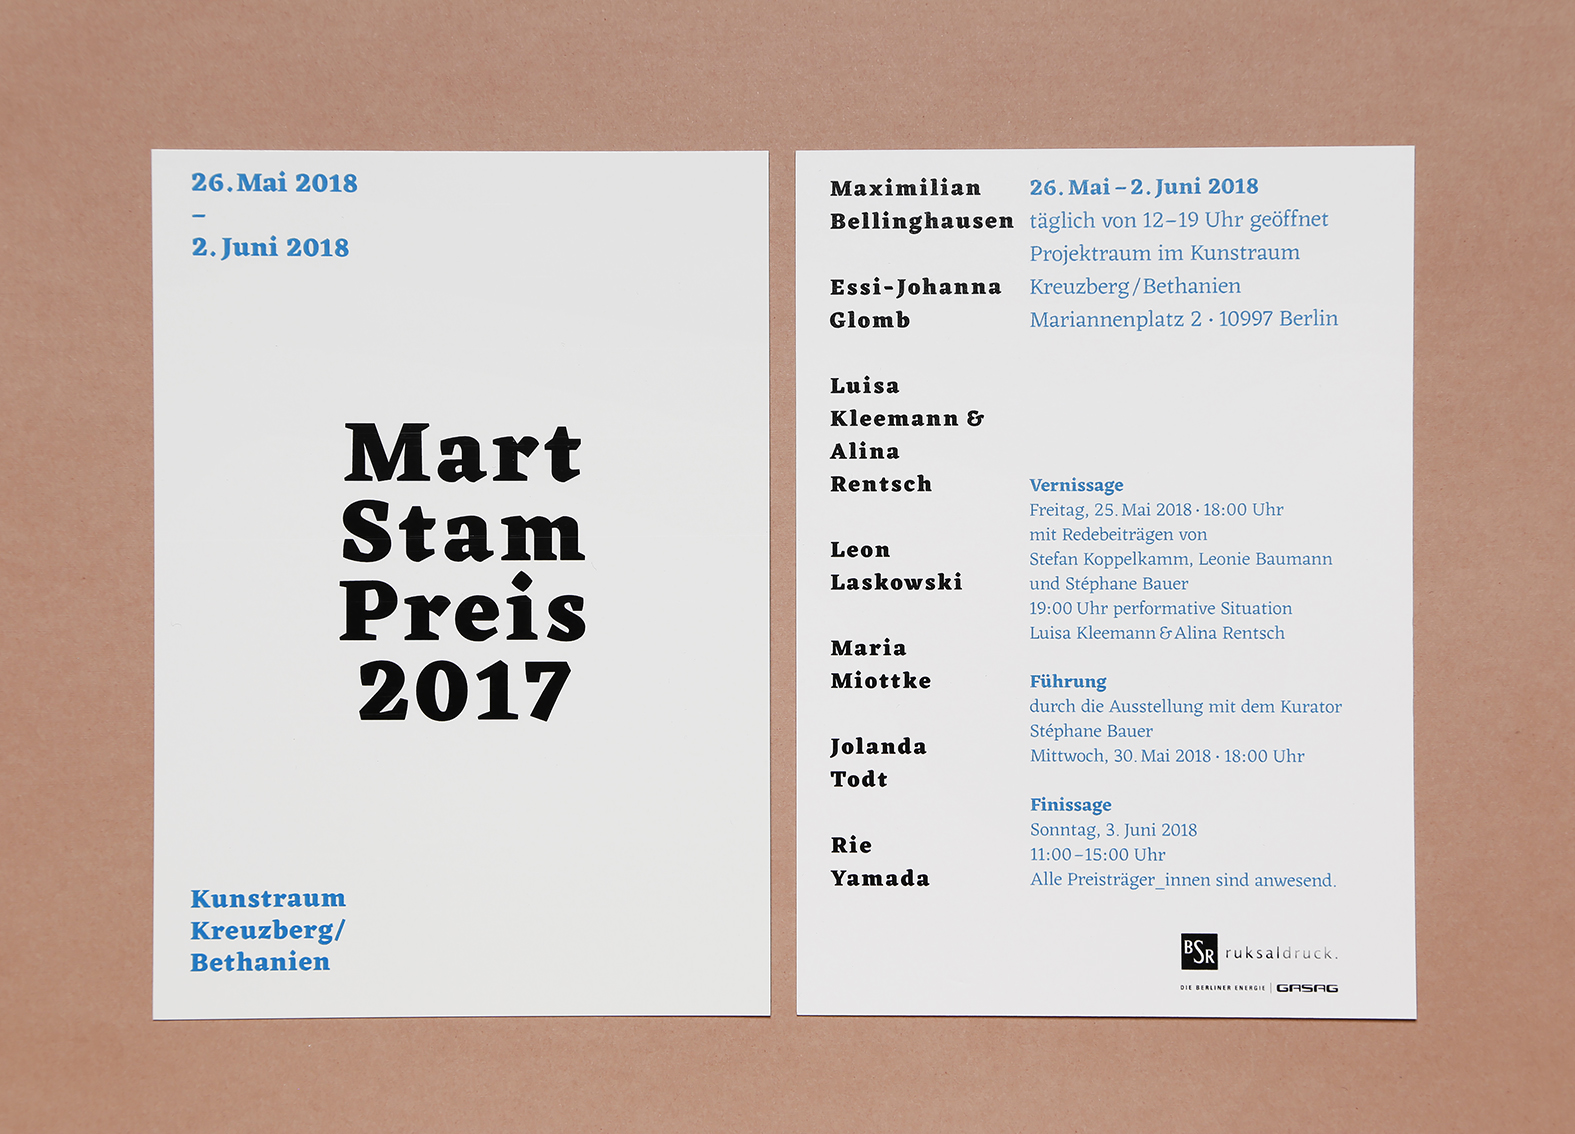 Exhibition in Berlin   Mart Stam Preis 2017 Kunstraum Kreuzberg/ Bethanien (Mariannenpl. 2, 10997 Berlin) Vernissage: 25. May 2018 at 18:00 Exhibition: 26. May – 2. June 2018, 12:00 -19:00 Finissage: 3. June 2018 11:00 - 15:00  https://www.facebook.com/events/376311519538864/